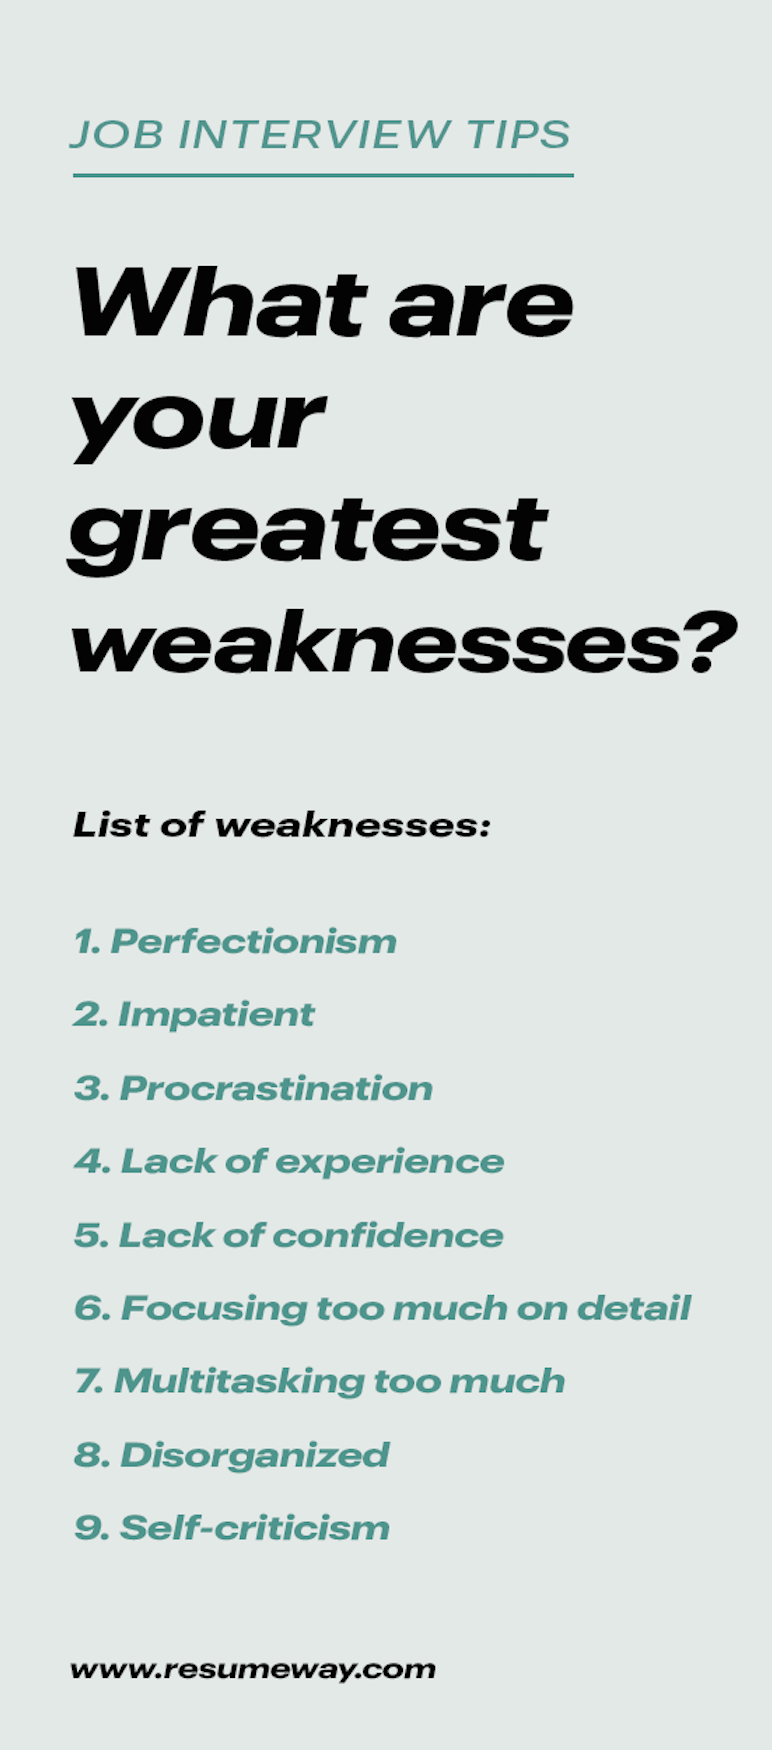 Strengths And Weaknesses For Job Interviews Great Answers Resumeway Job Interview Answers Job Interview Job Advice